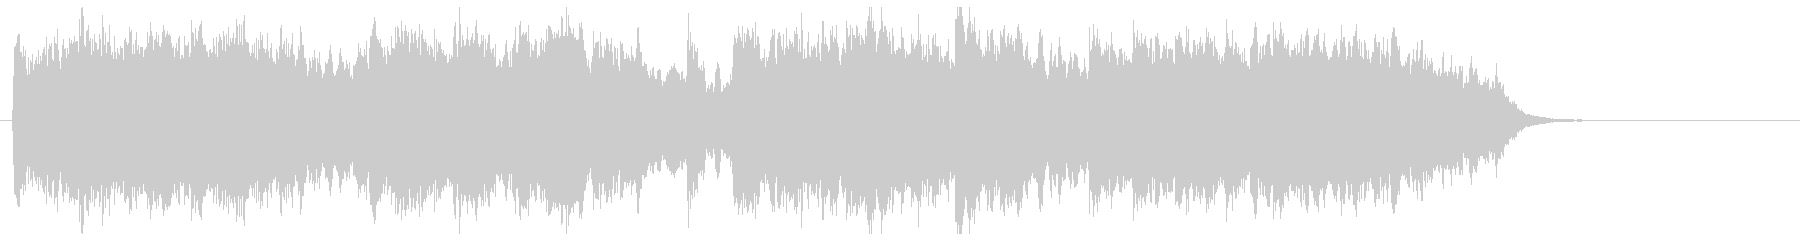 Very relaxed string pop's unreproduced waveform